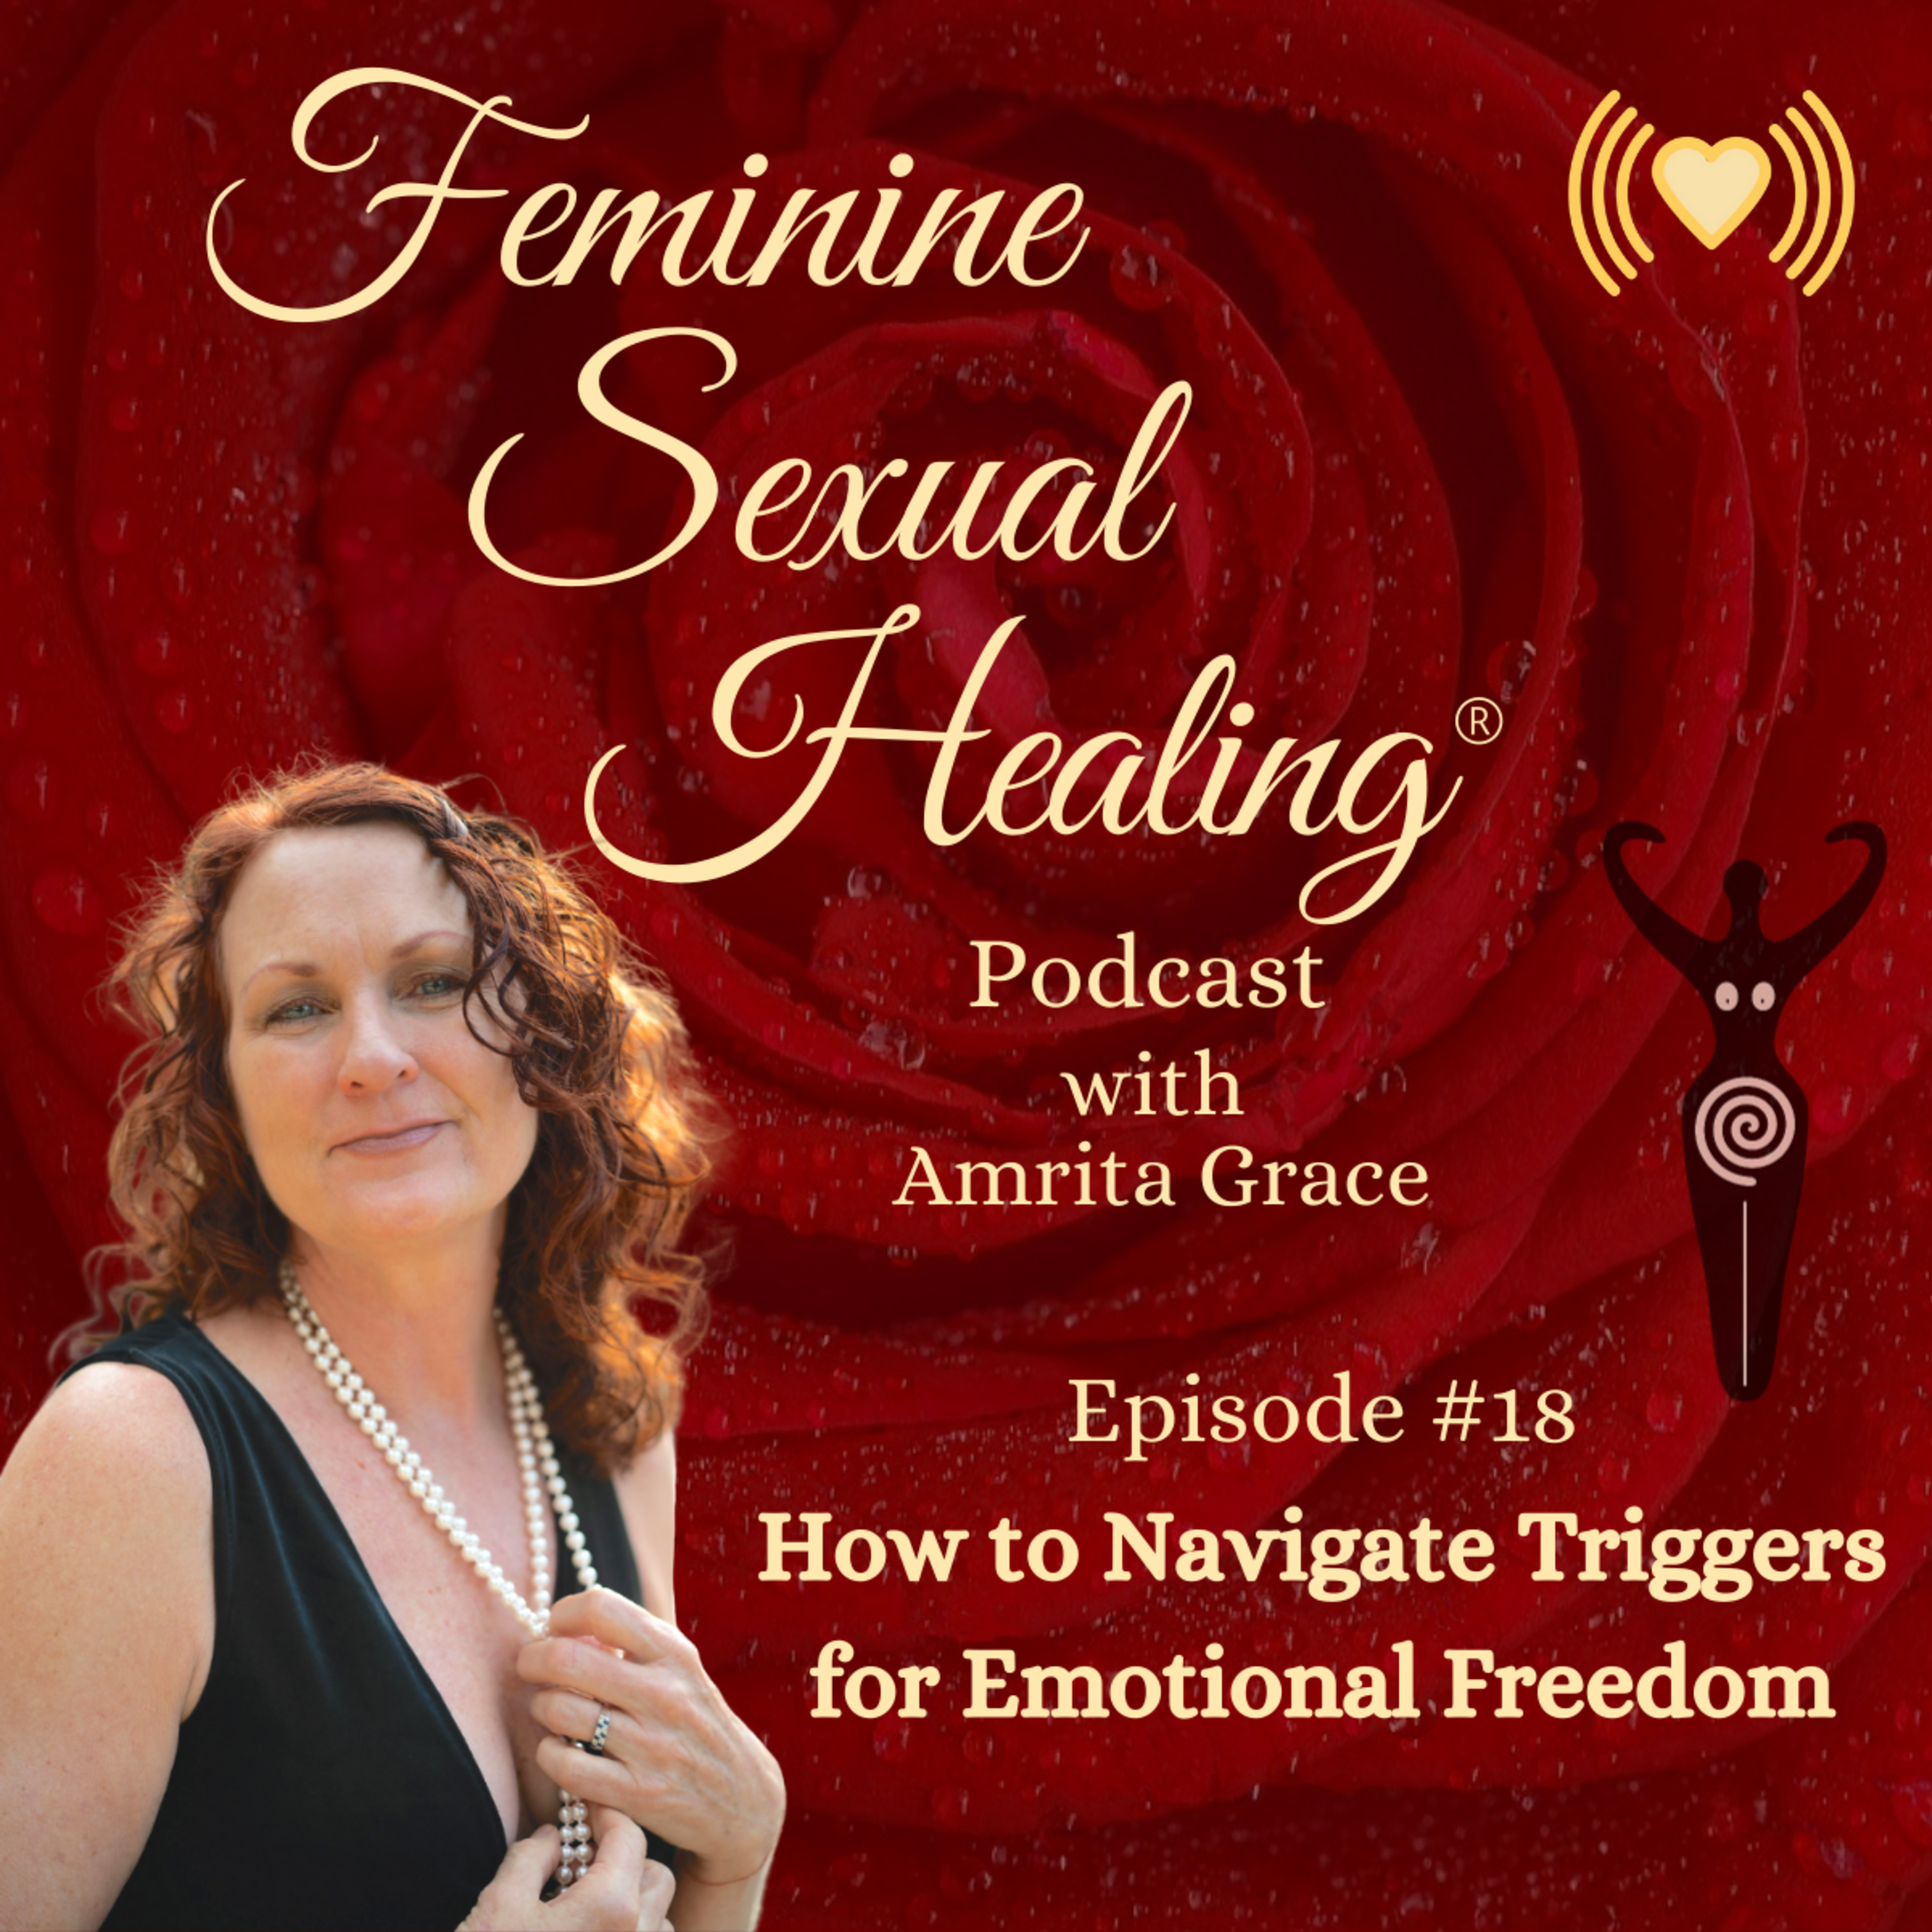 Episode #18 How to Navigate Triggers for Emotional Freedom